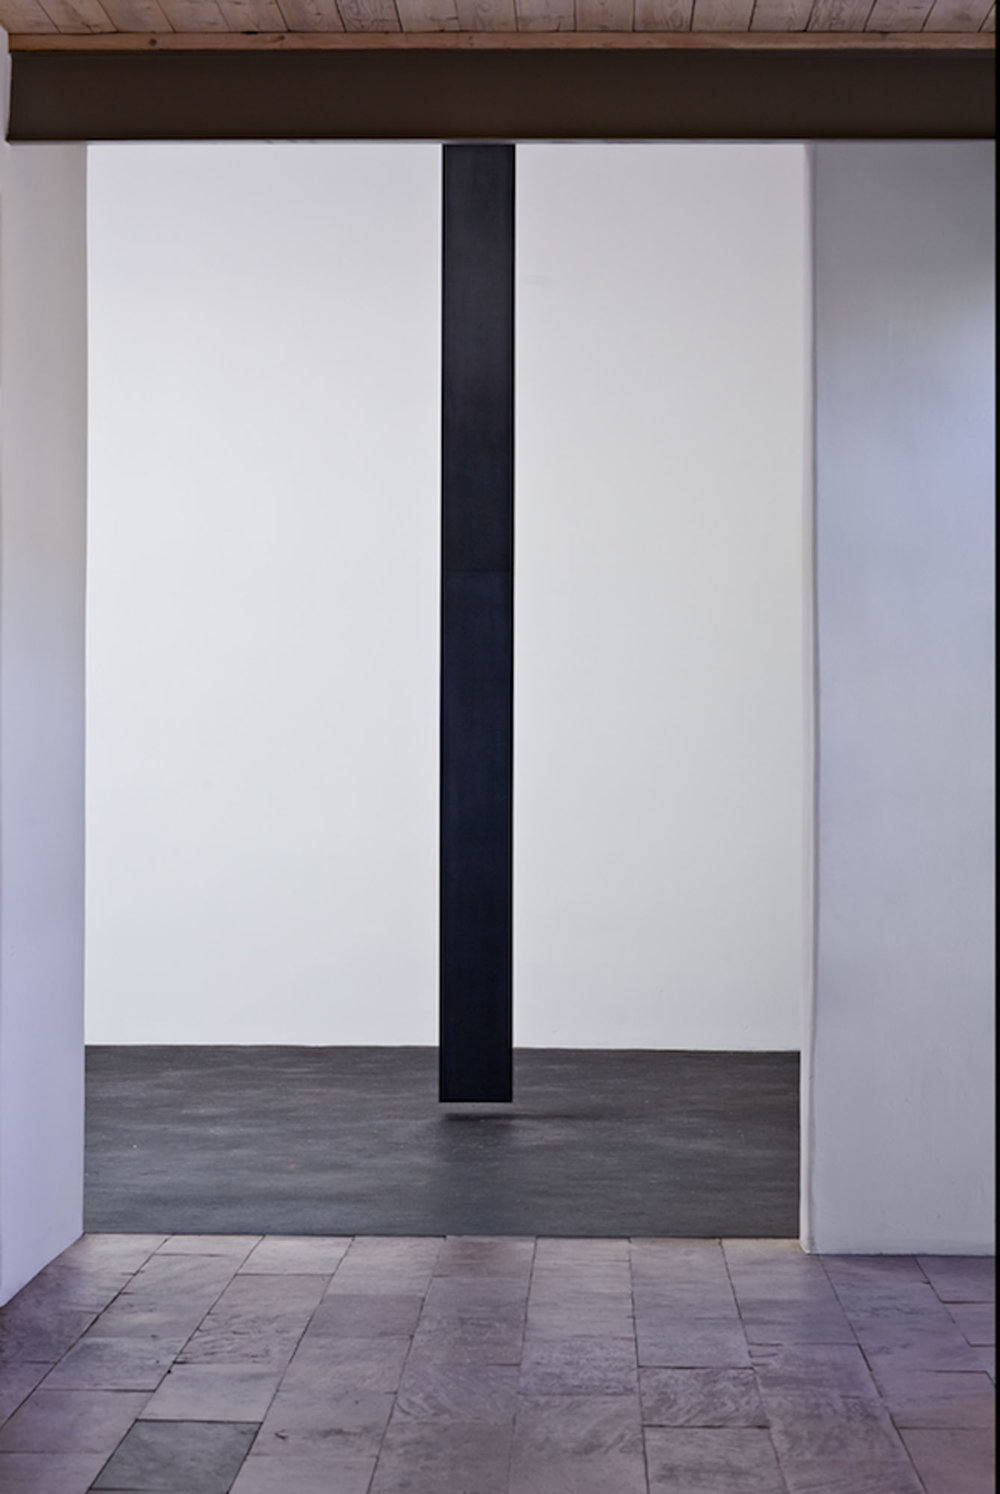 "Floating Column, 2008  Solid graphite, 14' x 10"" x 10"" x 9.5""  Lannan Foundation collection. Photo: Jamey Stillings"